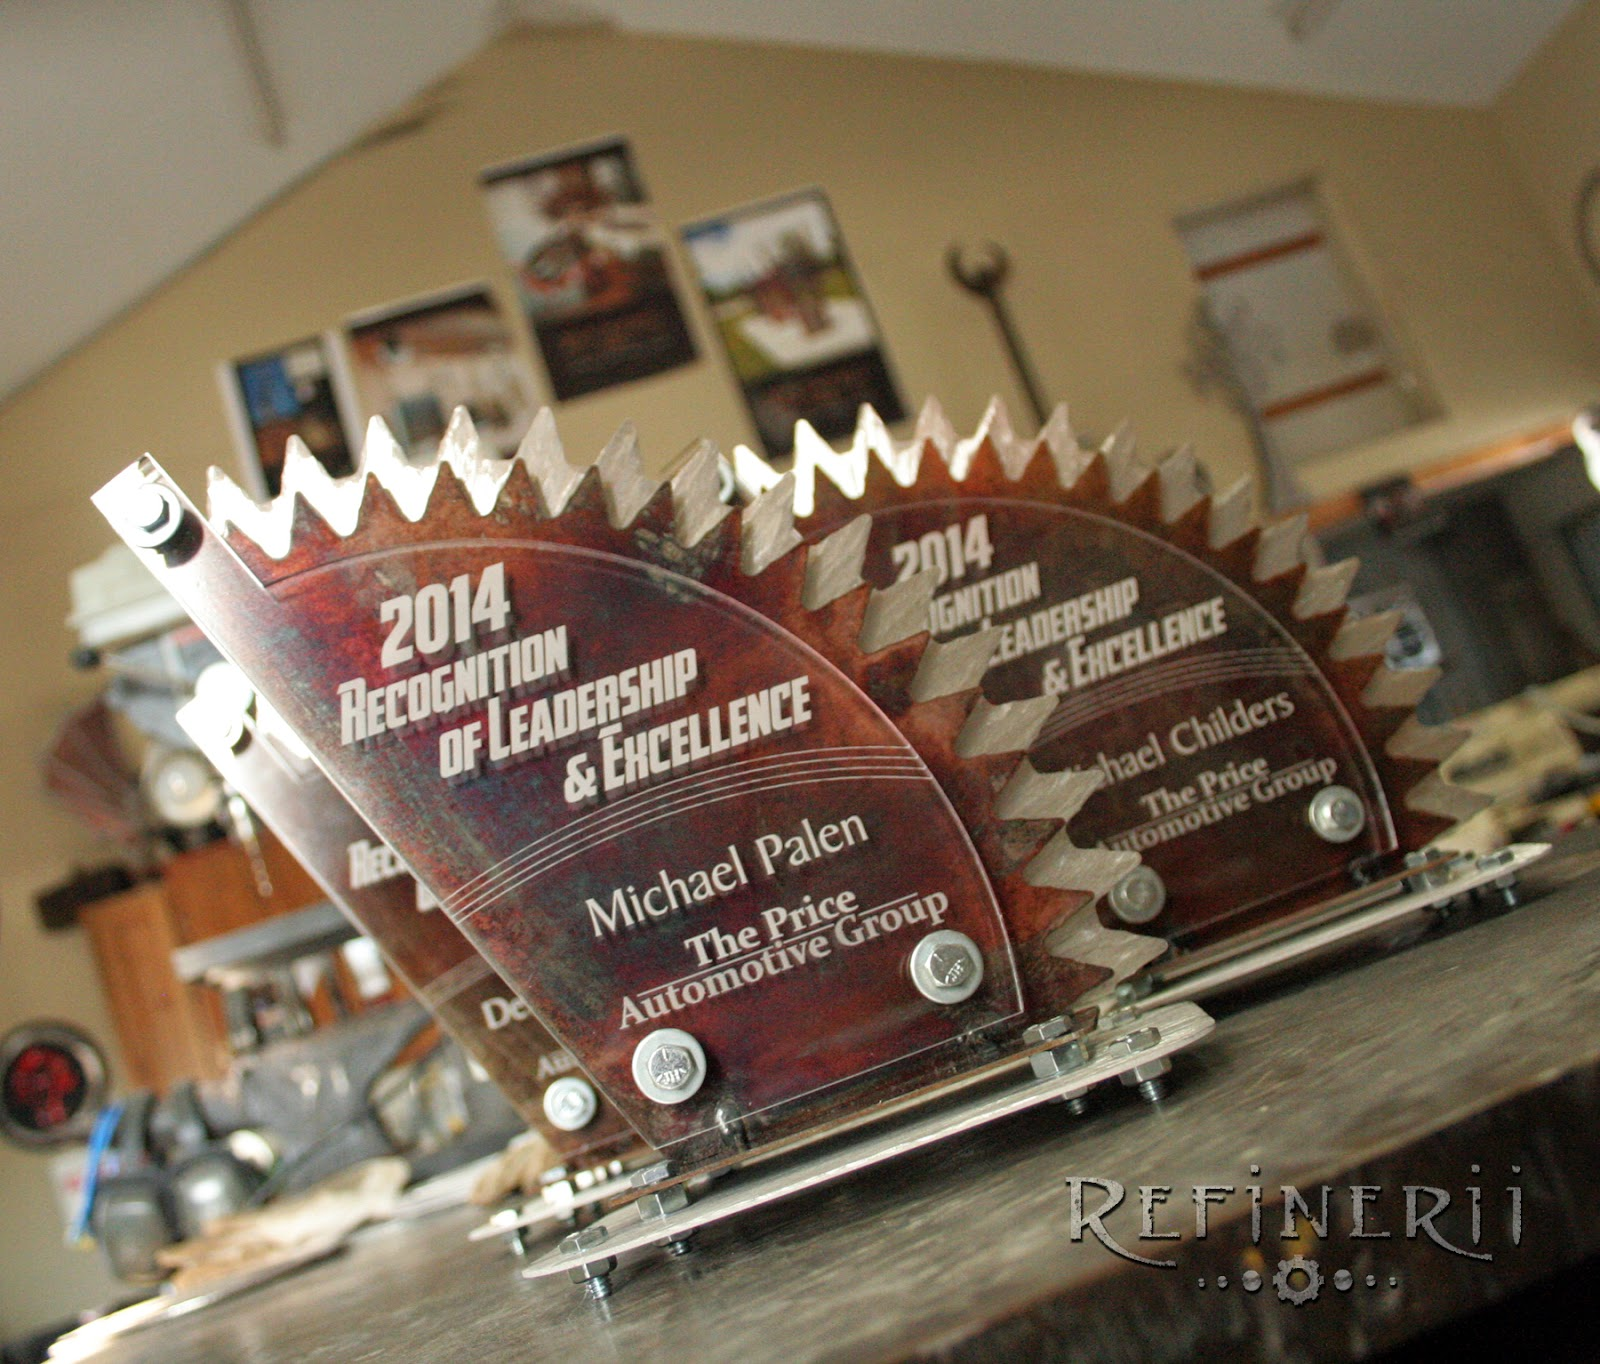 Custom Metal Sprocket themed trophies www.refinerii.com